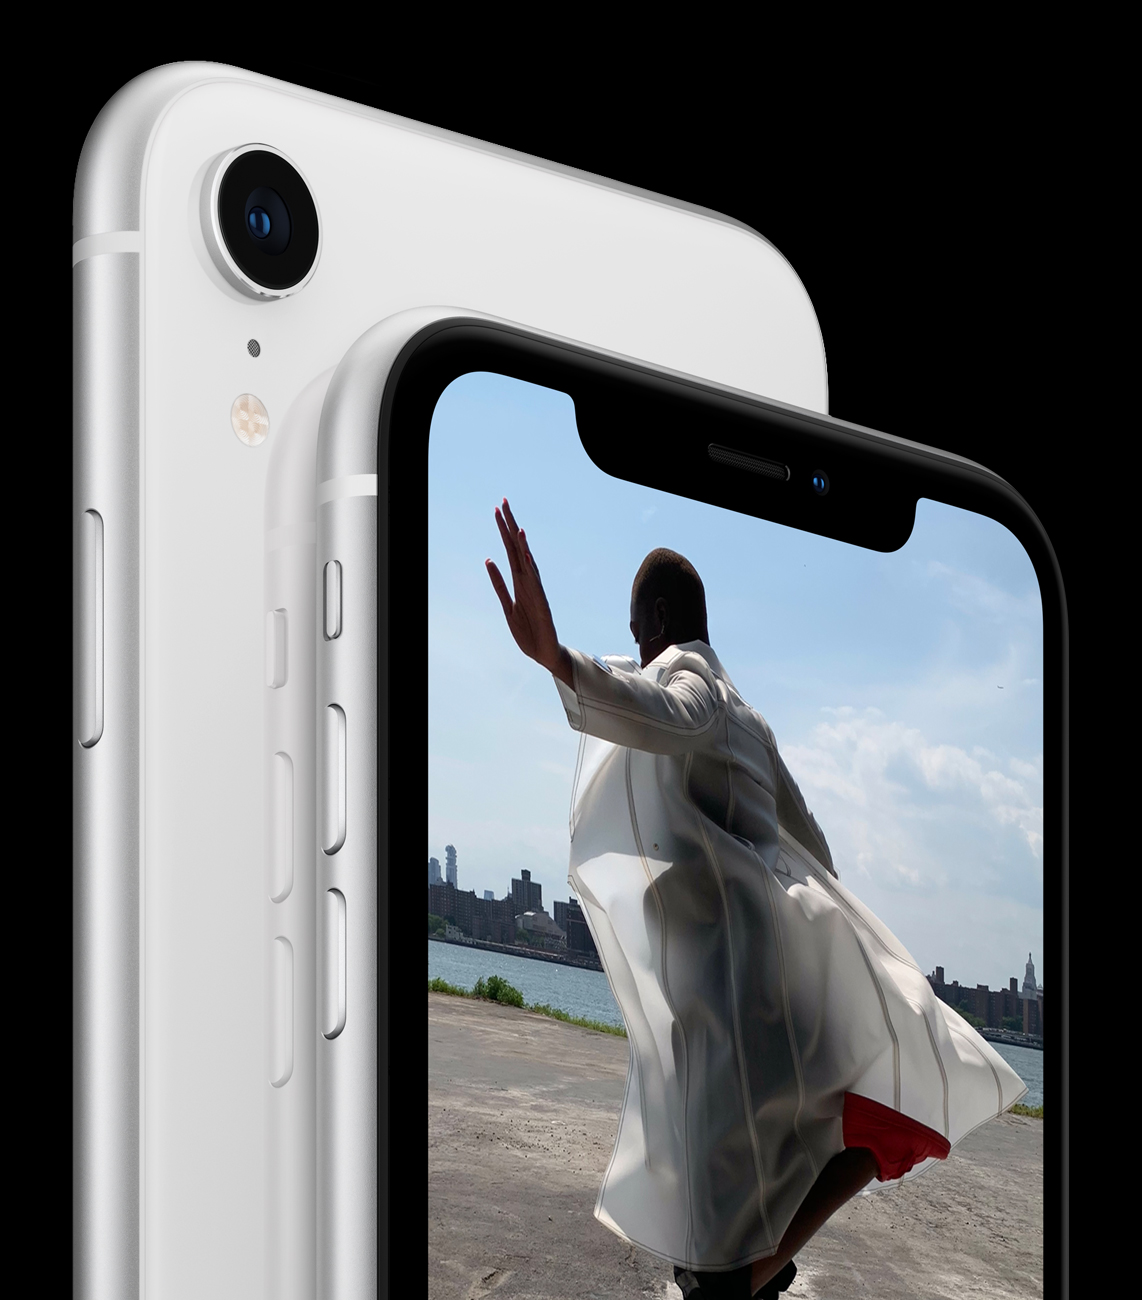 The new iPhone XR has an aluminium body and a glassback, and comes with a well blended and rounded LCD screen with no obvious pixelated edges. Image from the Apple Newsroom